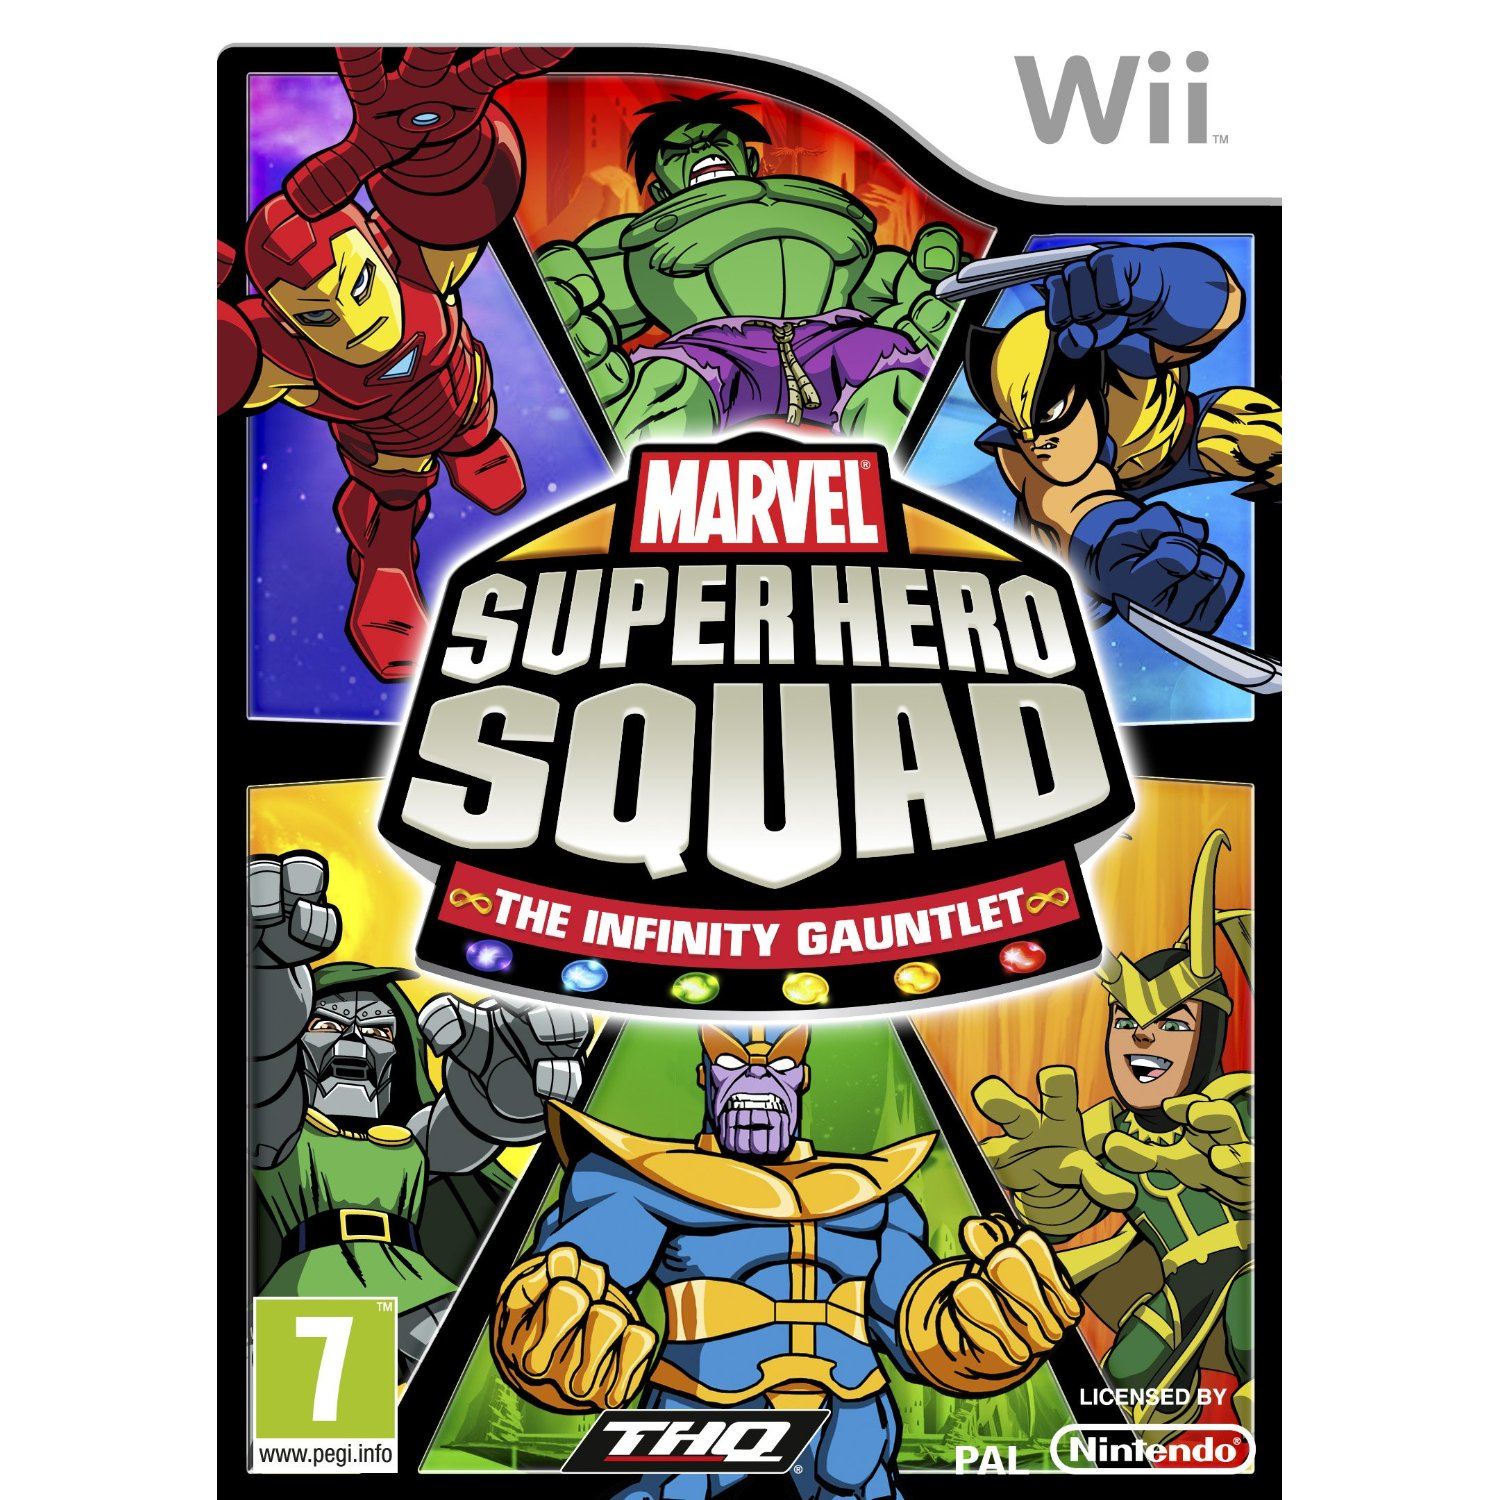 Marvel Super Hero Squad The Infinity Gauntlet Wii